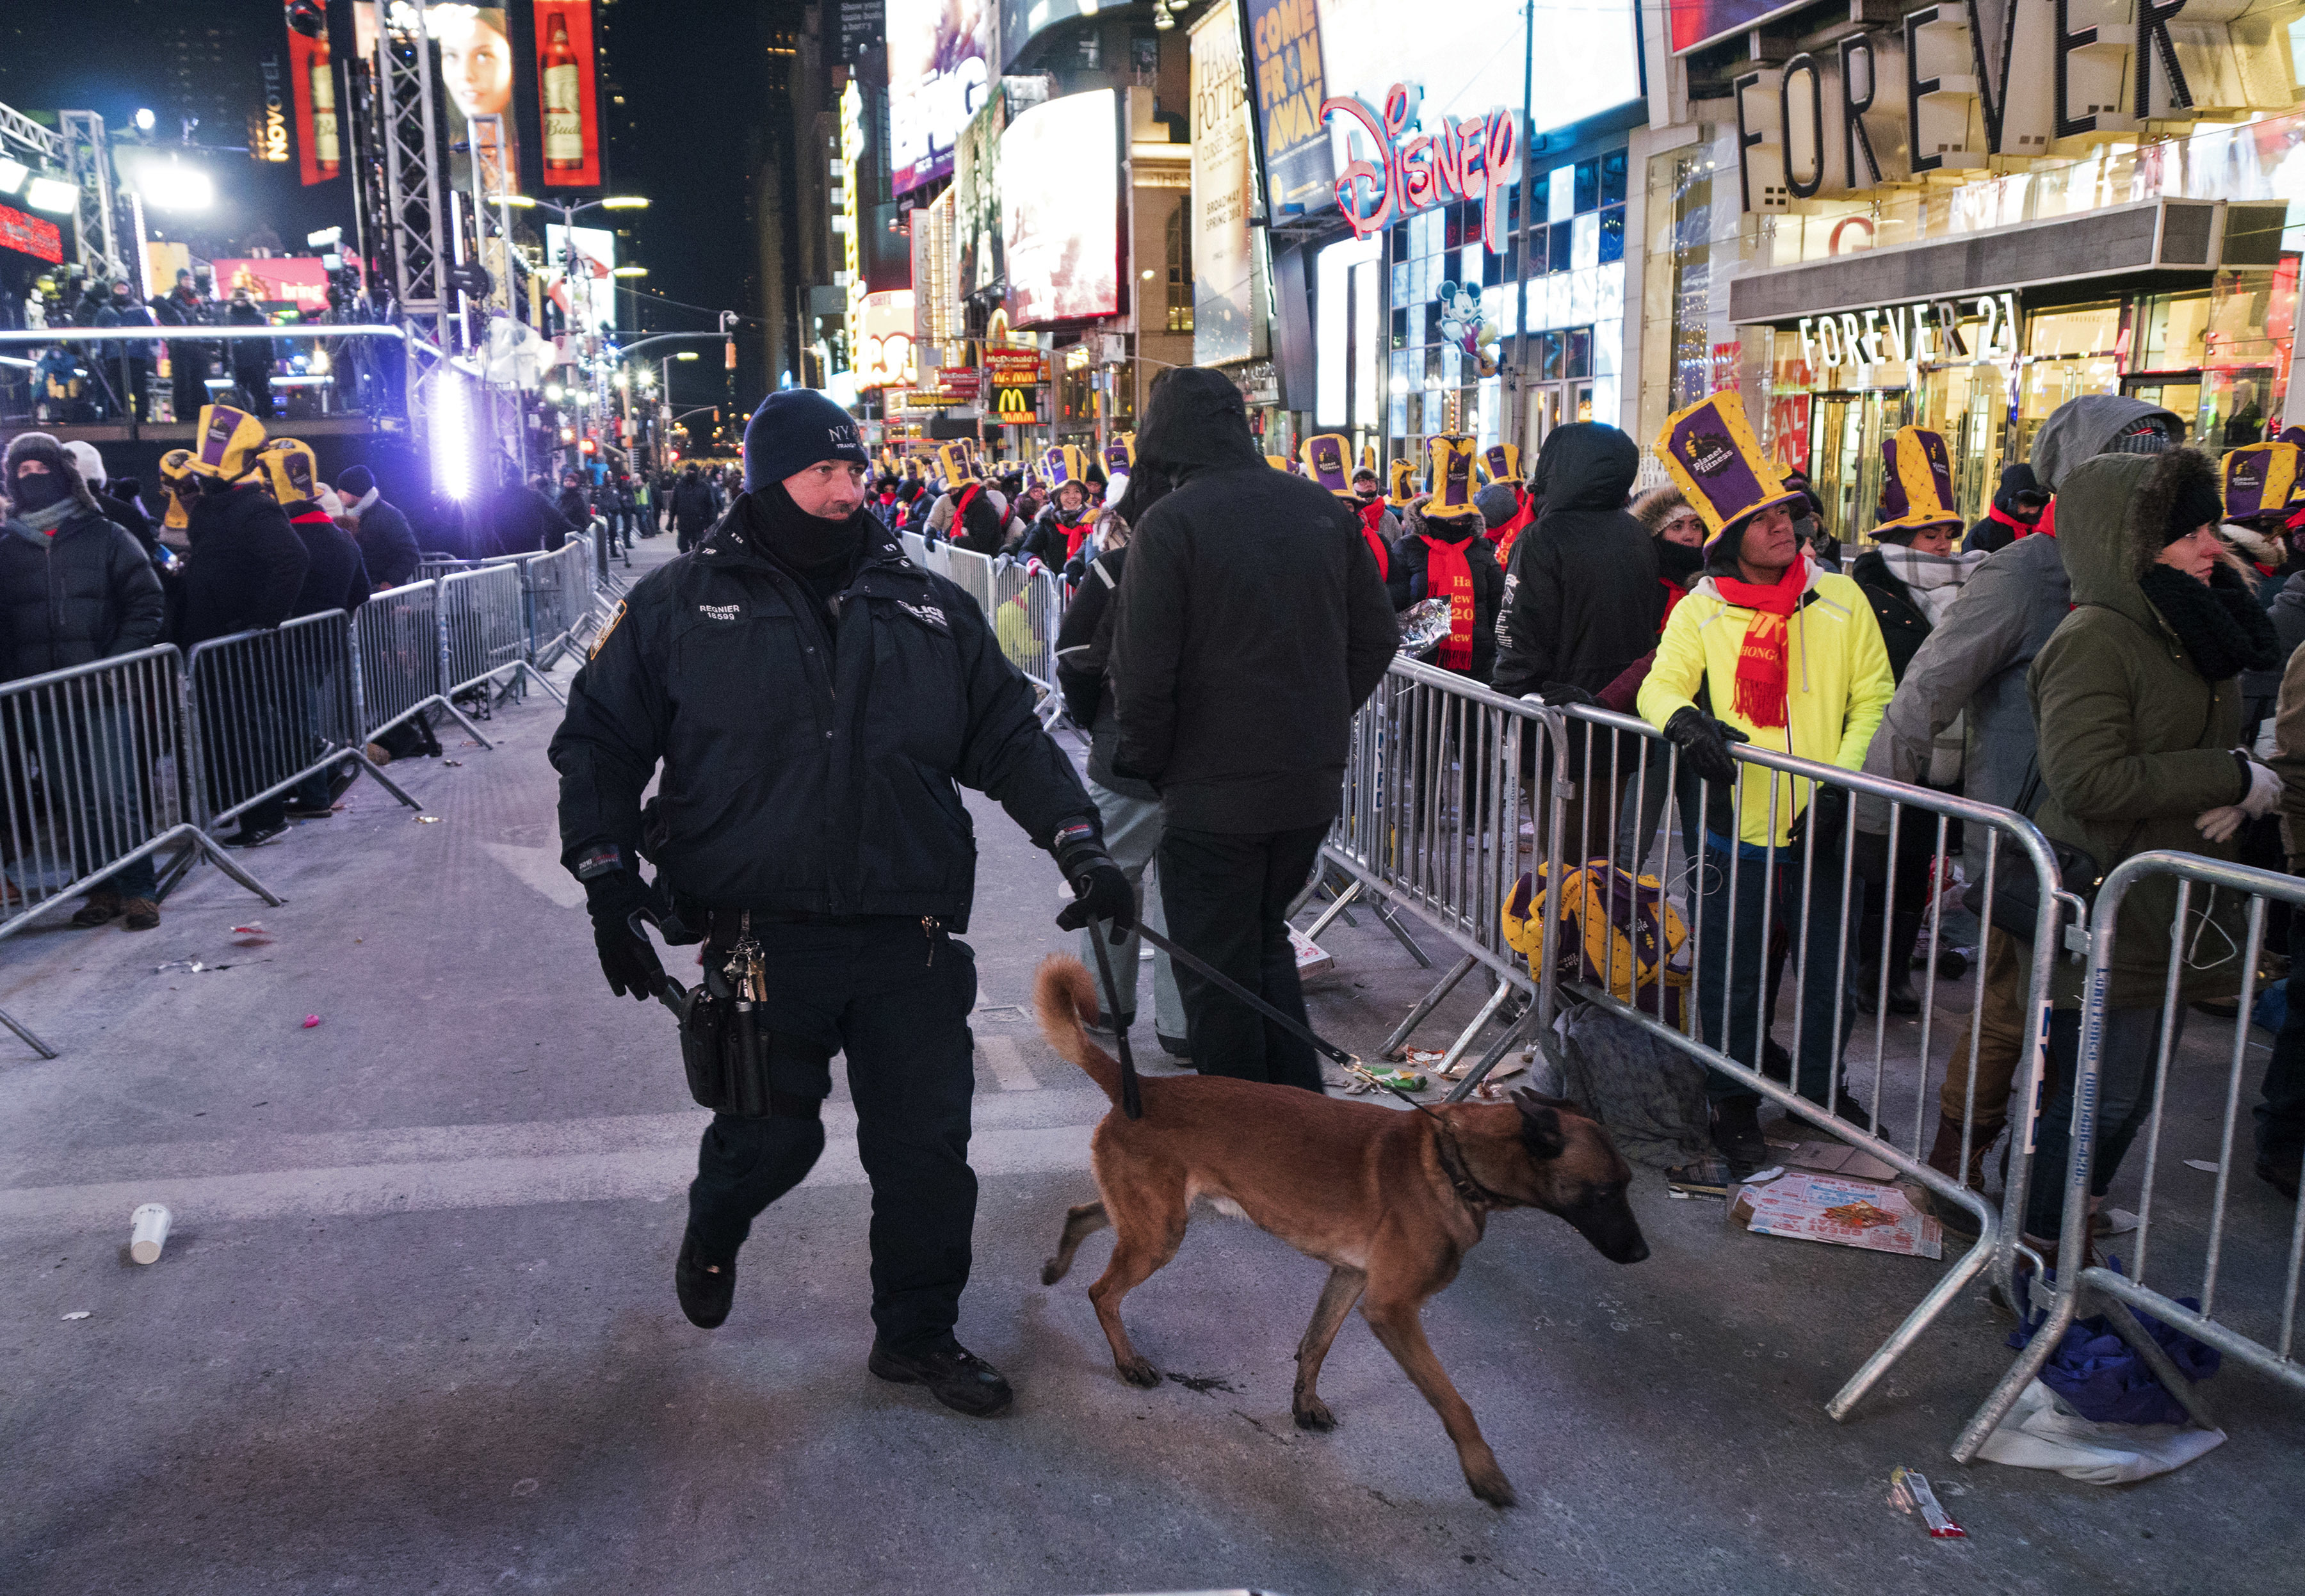 A New York City canine police officer walks past revelers gathered on Times Square in New York, Dec. 31, 2017.